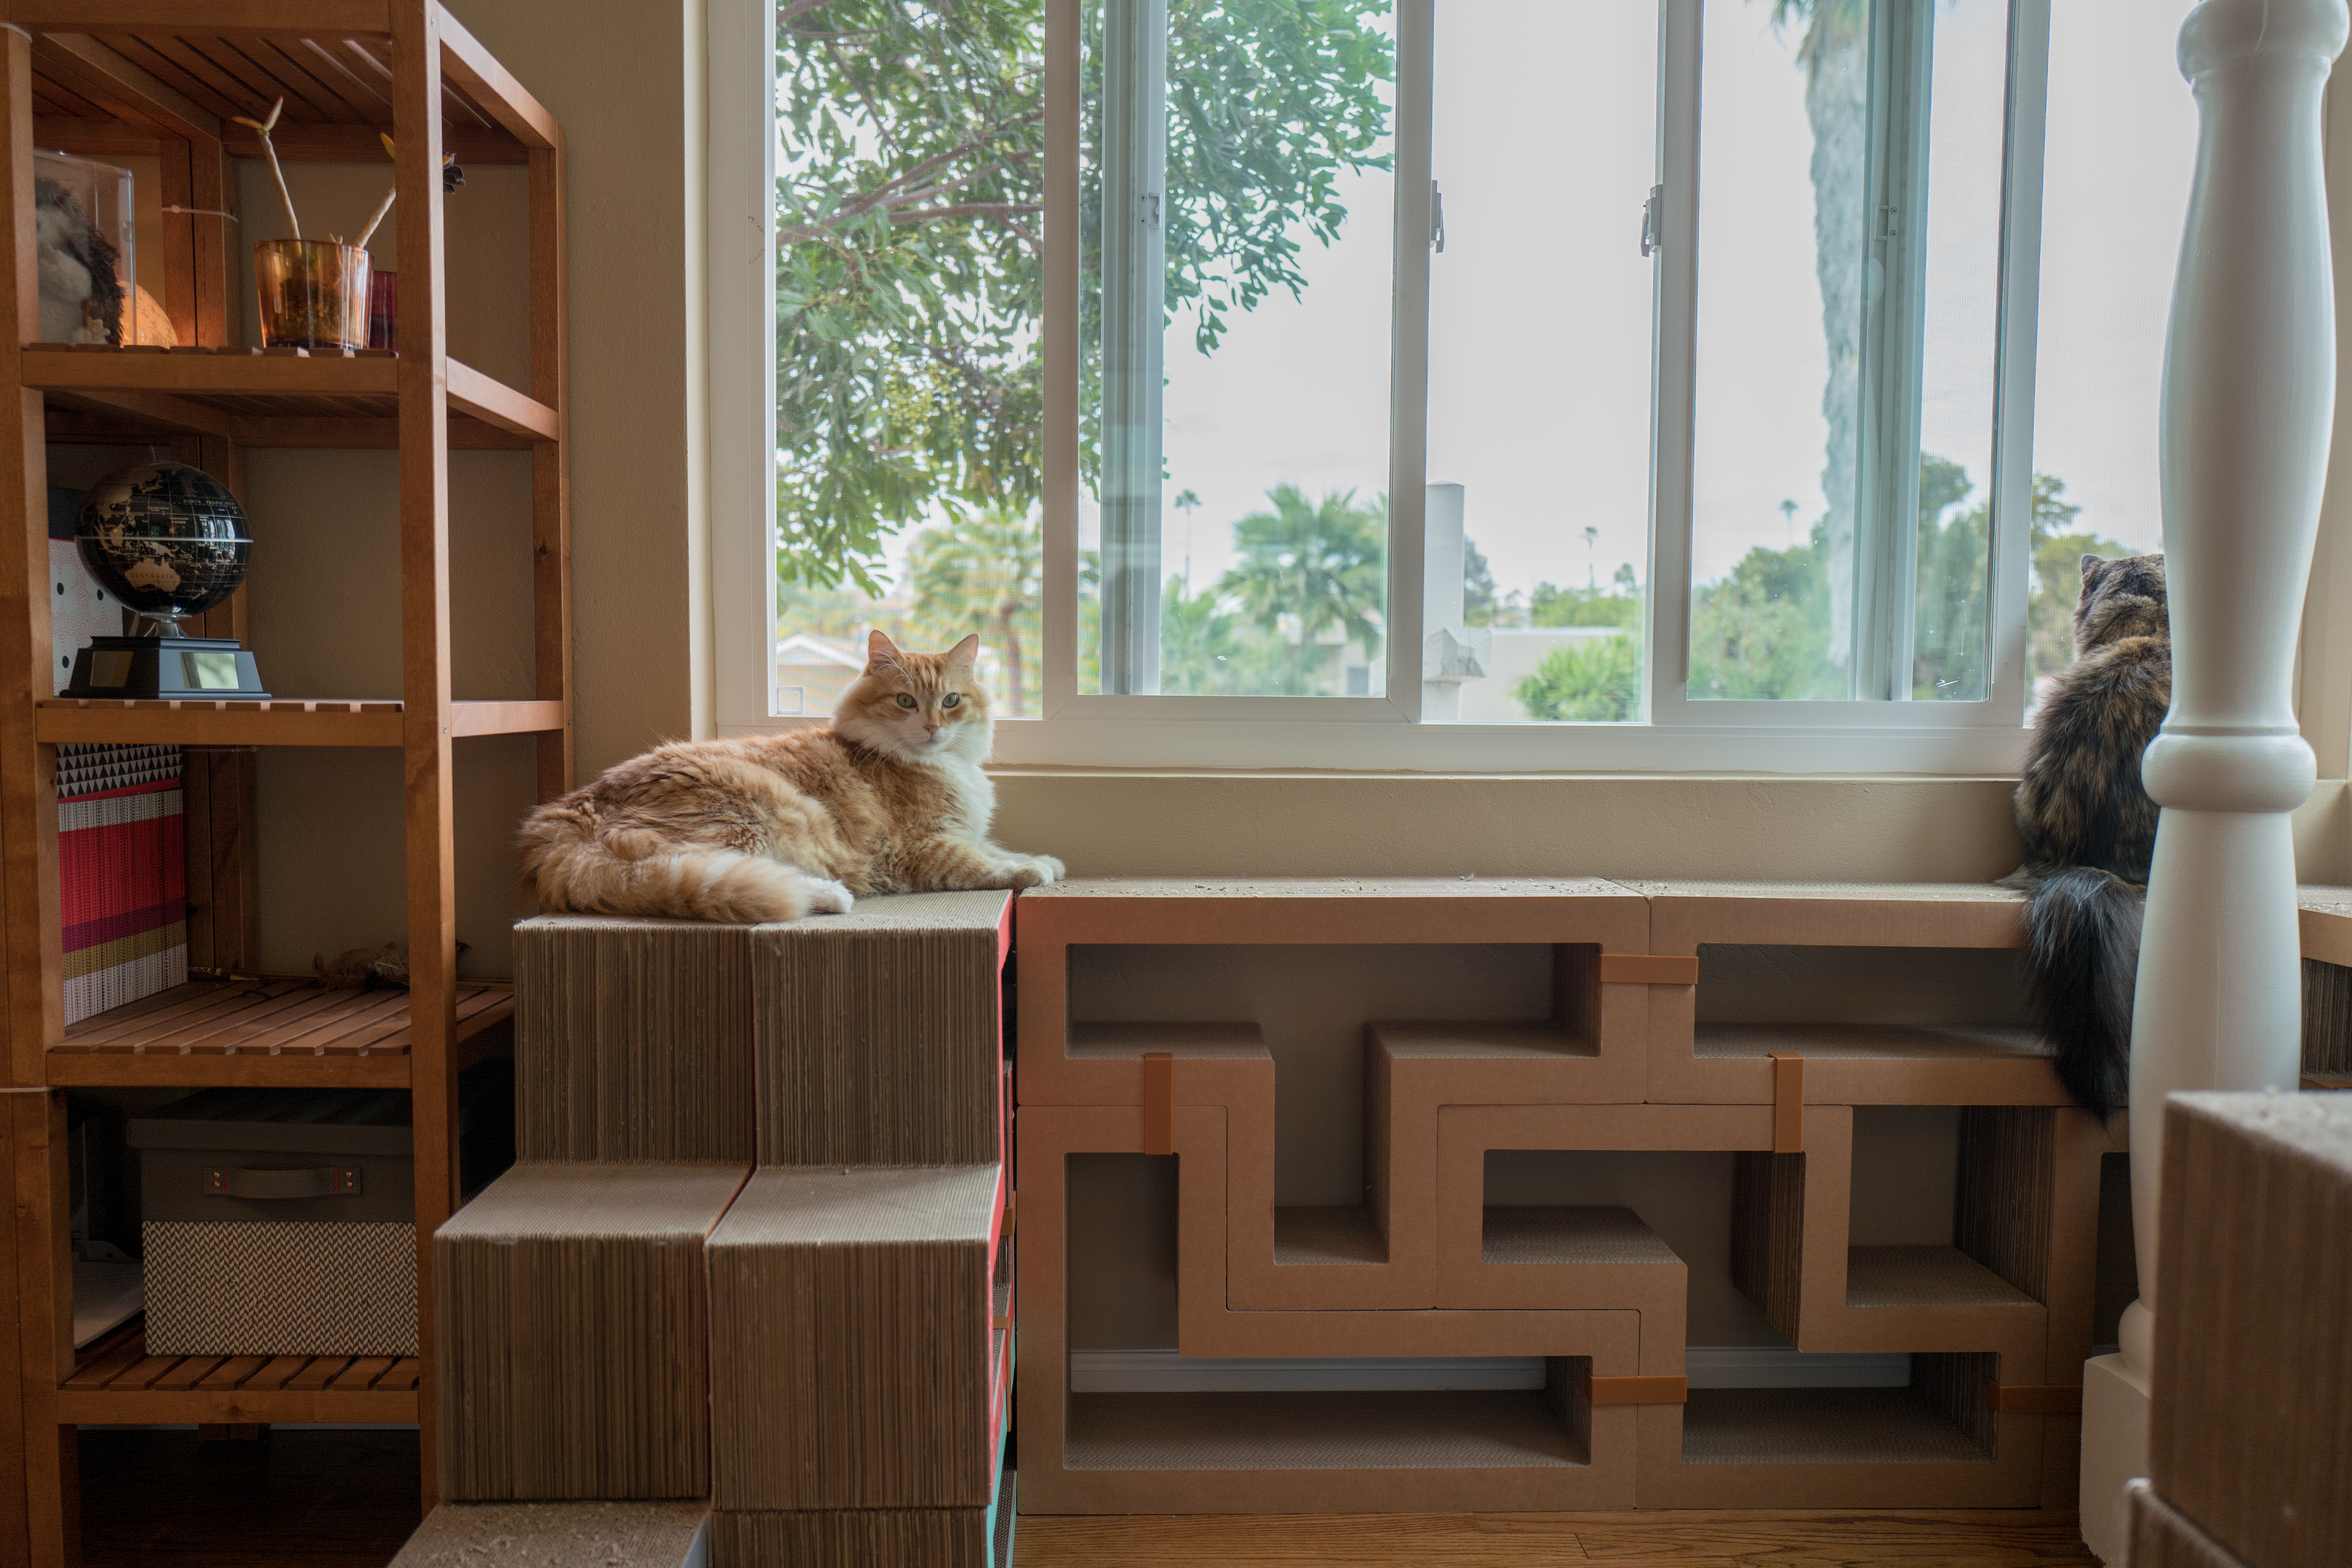 Among the sequence shot, only one offers best breadth-sense of the corner  windows. I debated the choice, since Cali's head is just outside the narrow  field ...